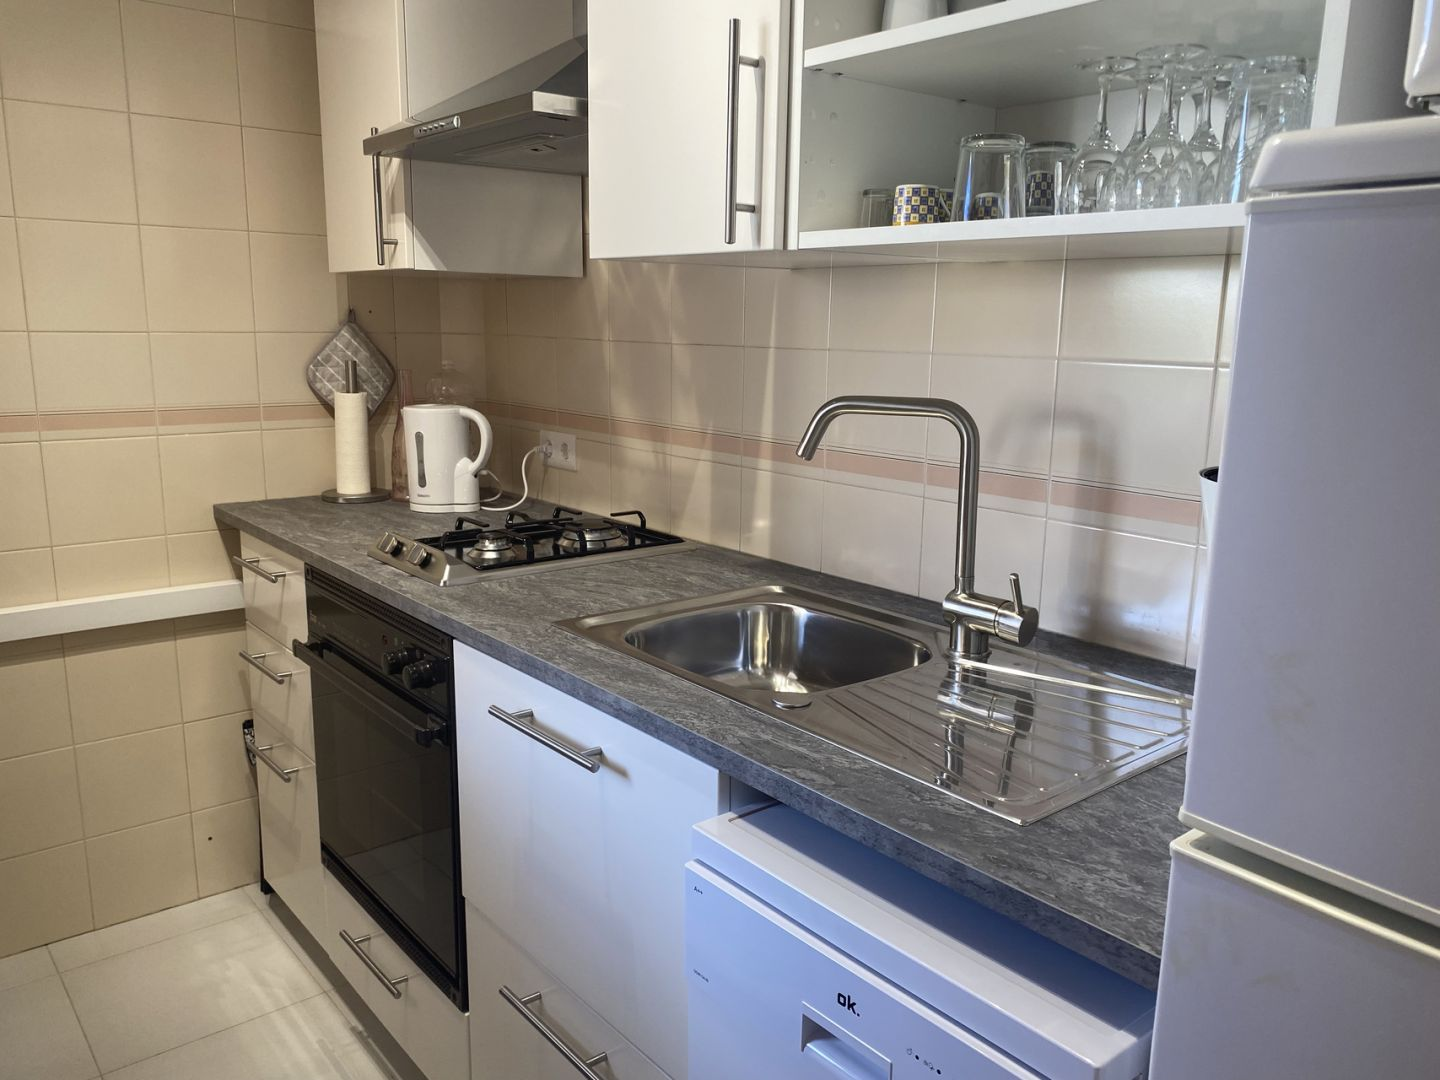 1 Bed Apartment for sale in Puerto Pollensa 4